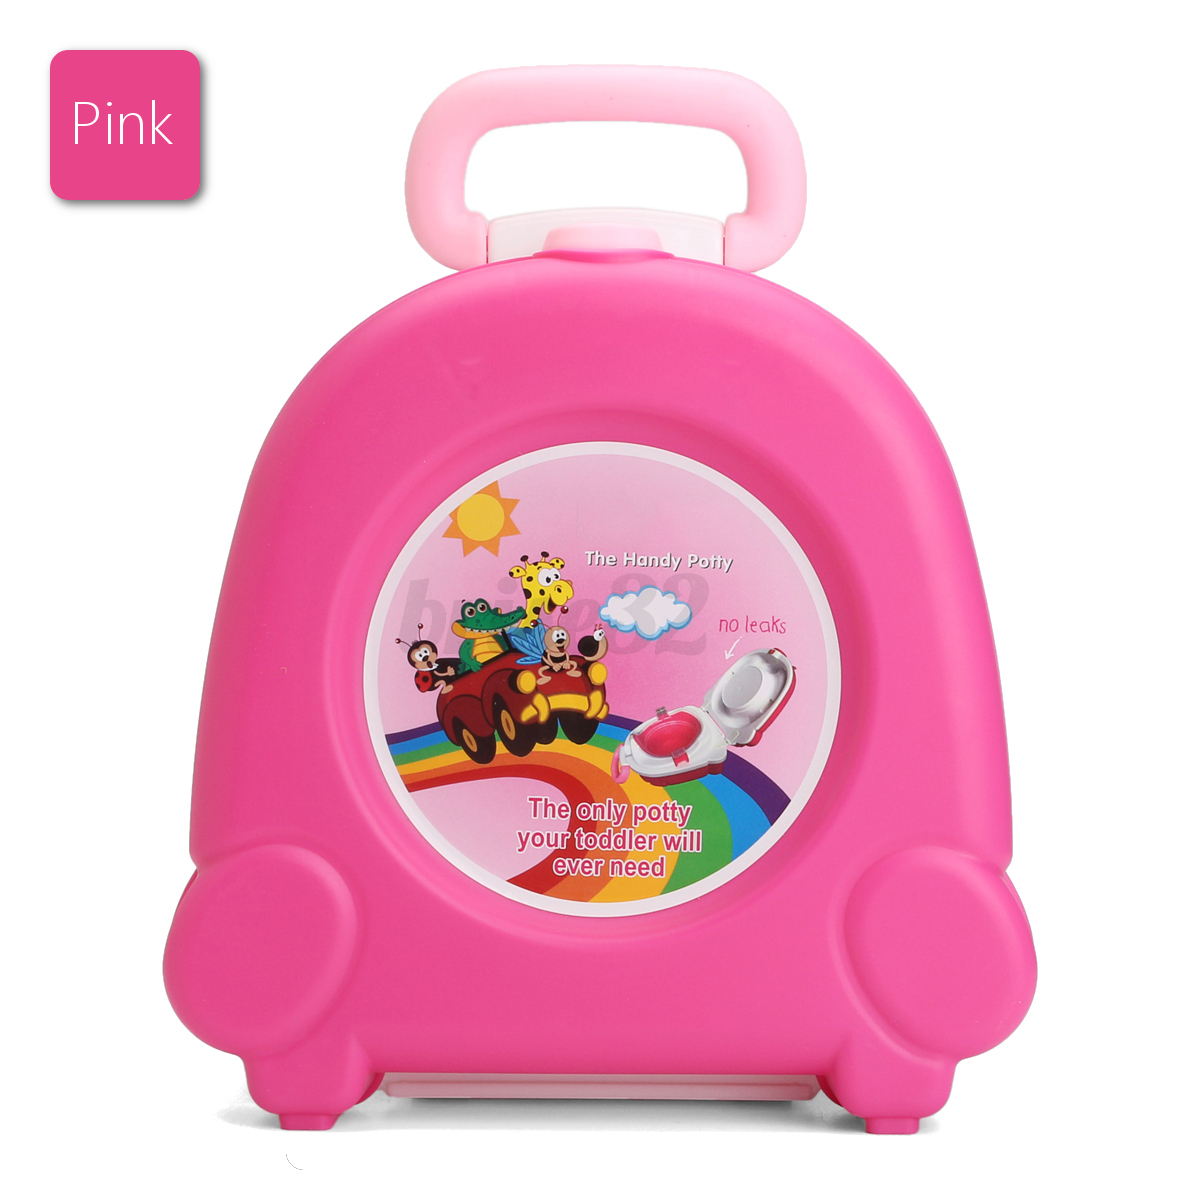 kid baby toddler portable travel potty urinal toilet pee pot training seat chair ebay. Black Bedroom Furniture Sets. Home Design Ideas